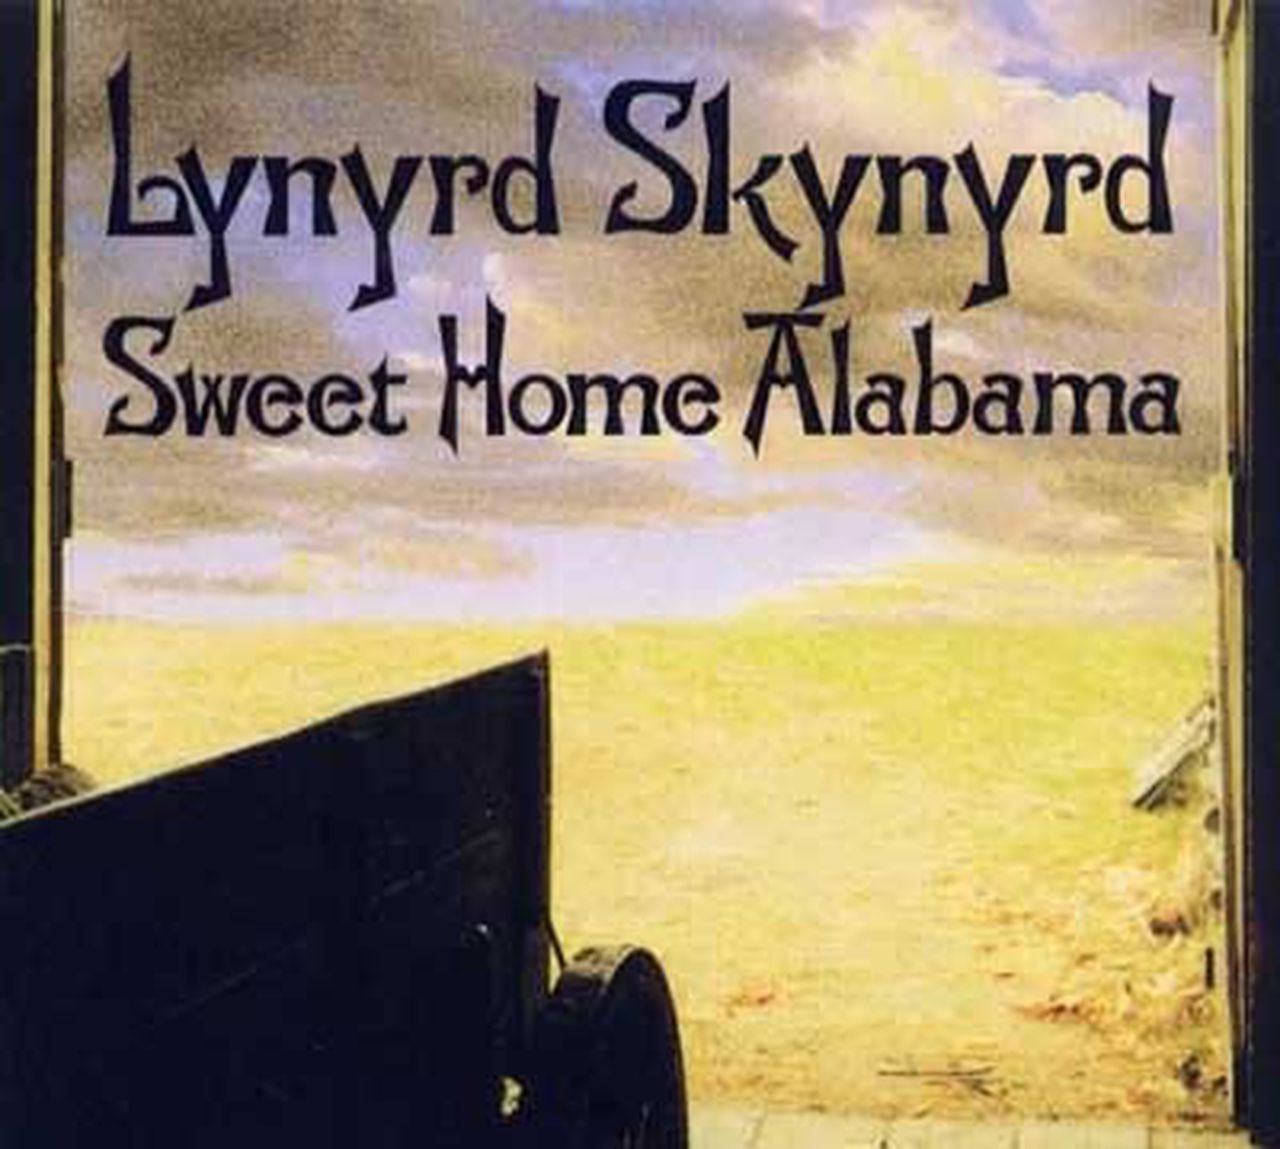 The lines about neil young for. Writer Likes Skynyrd S Sweet Home Alabama Even Though He Didn T Like George Wallace Al Com